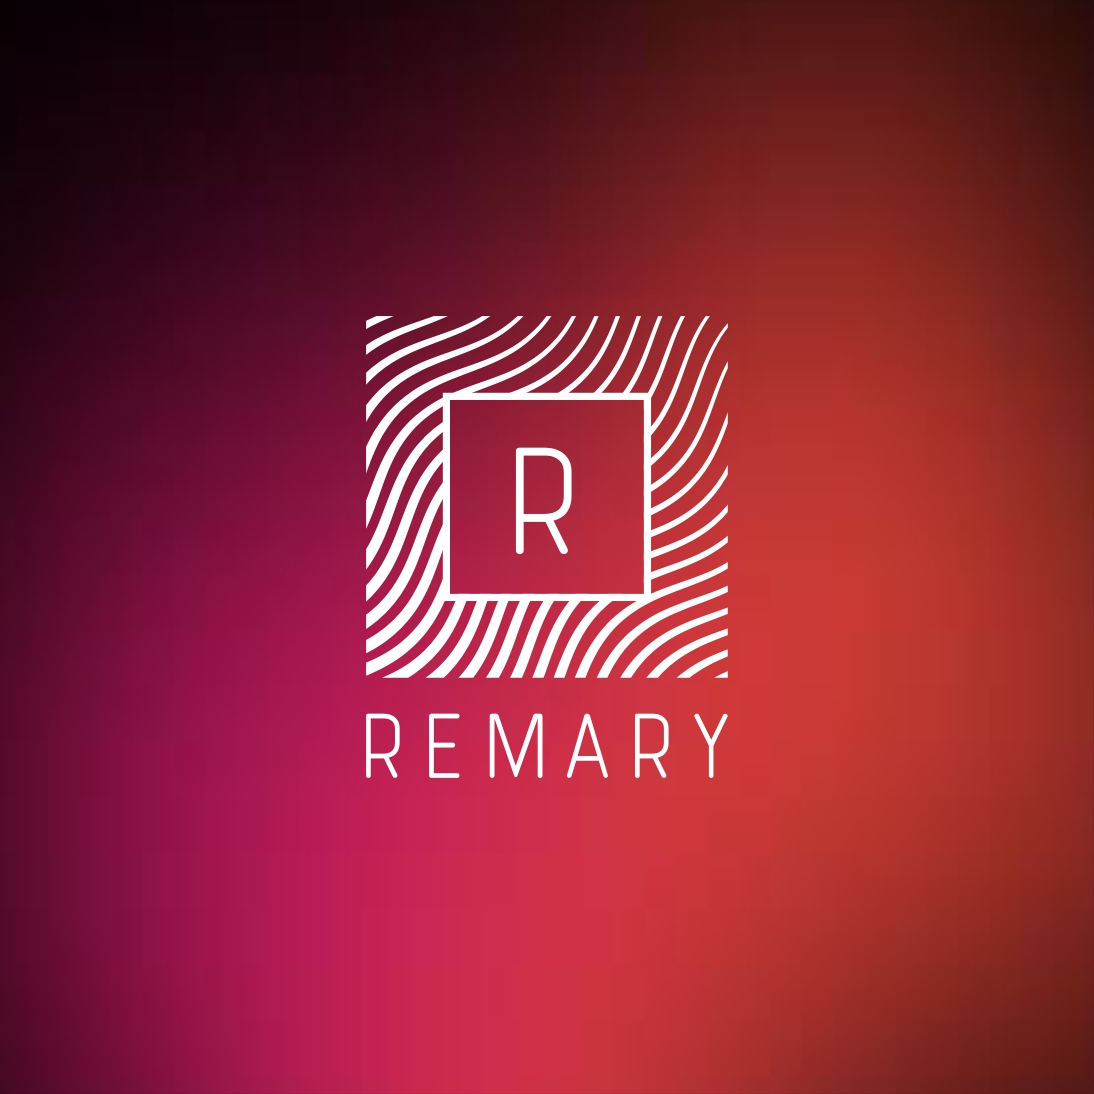 Remary